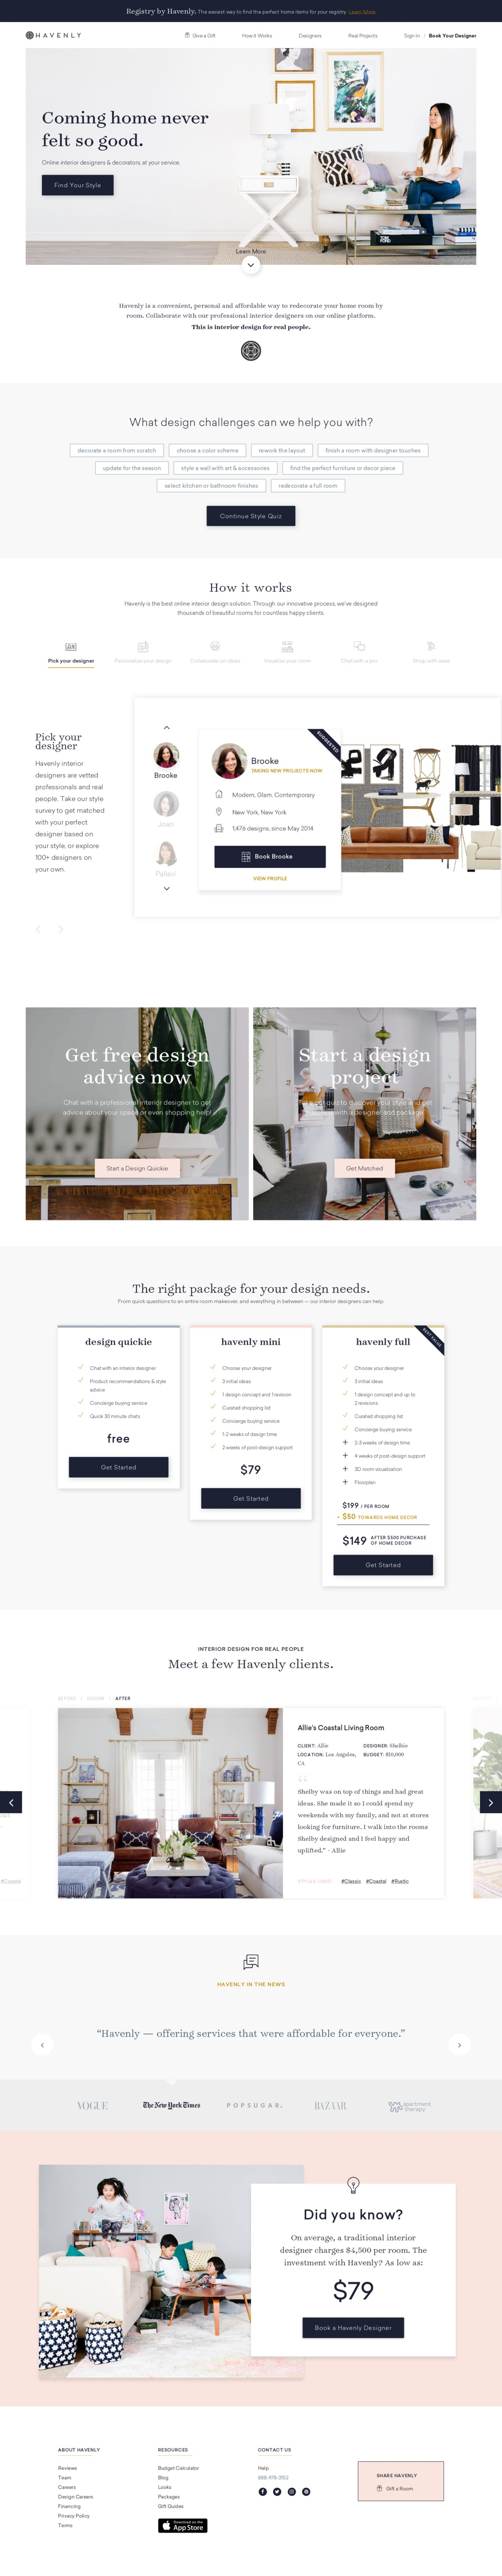 Havenly - Effortless Online Interior Design & Decorating Services